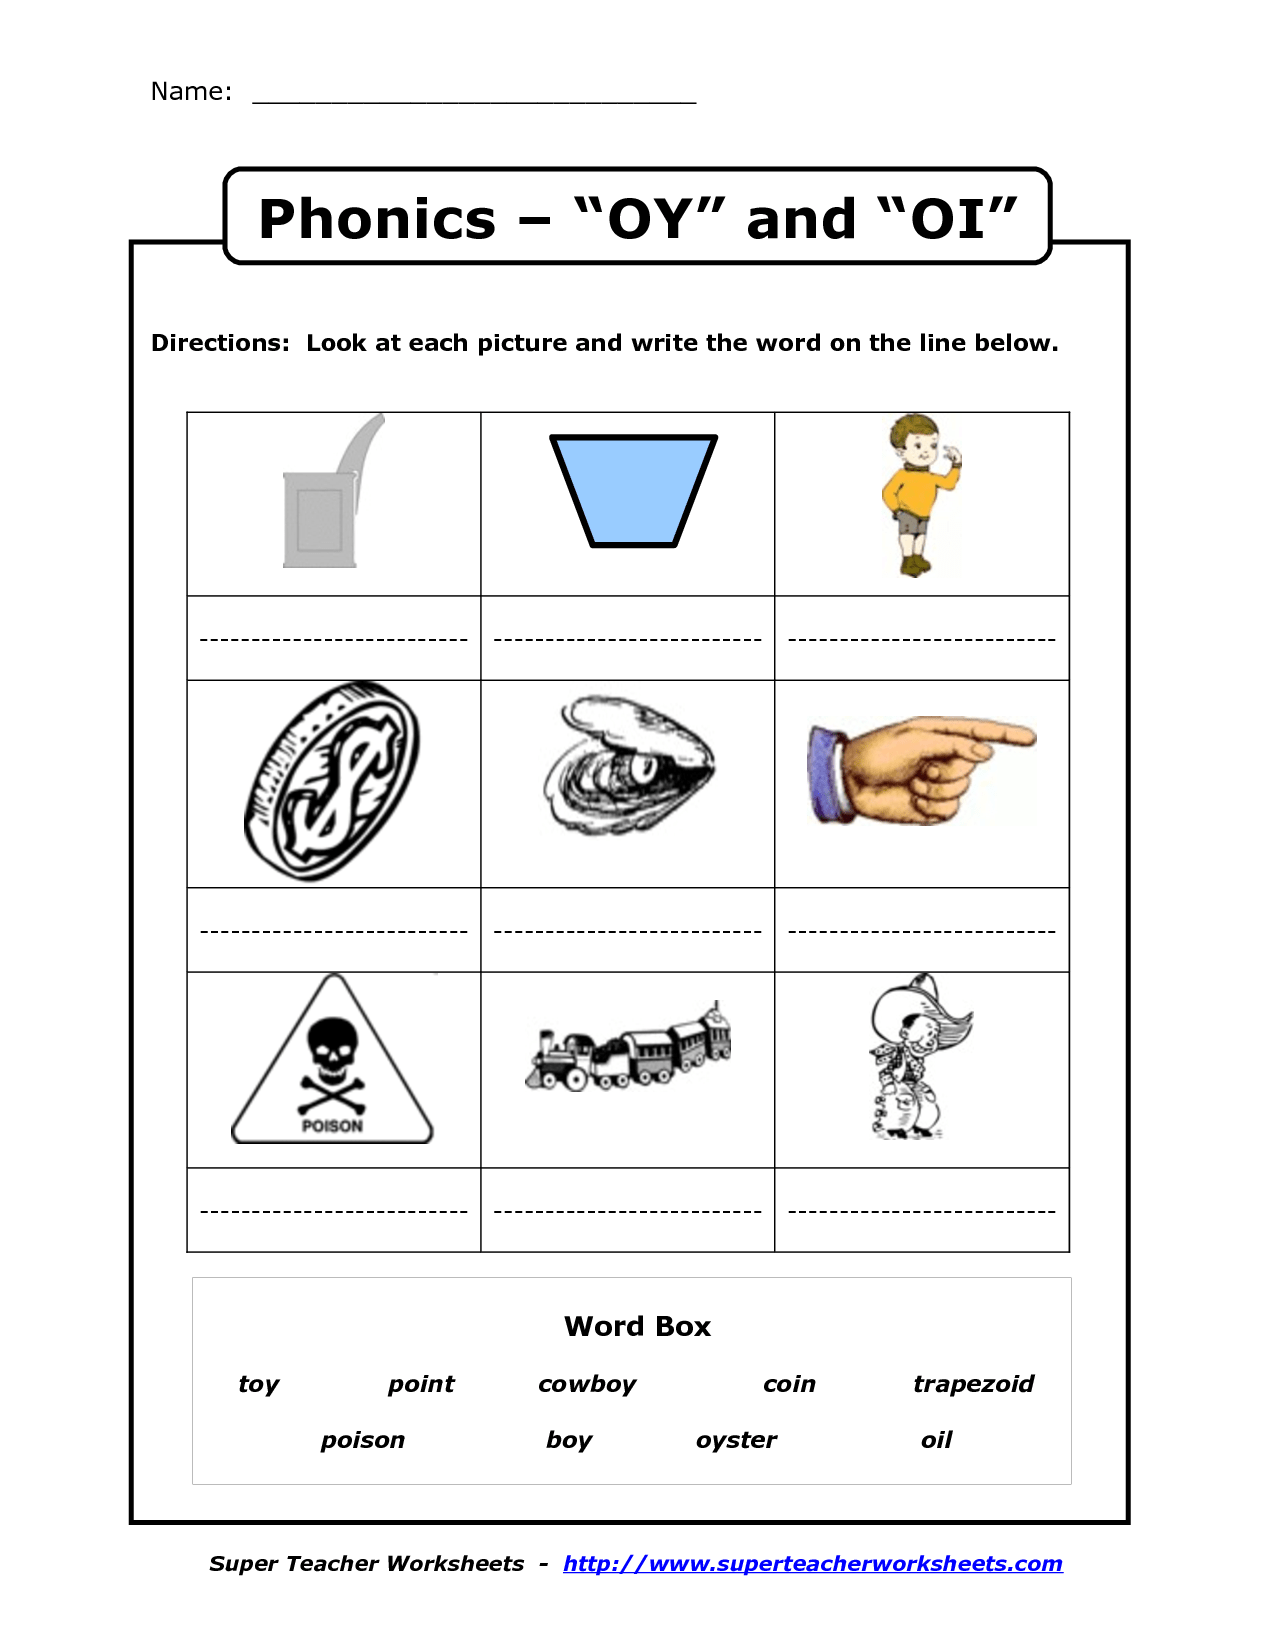 hight resolution of Oy And Oi Phonics Worksheets   Second Grade   Phonics Worksheets on Best  Worksheets Collection 6810